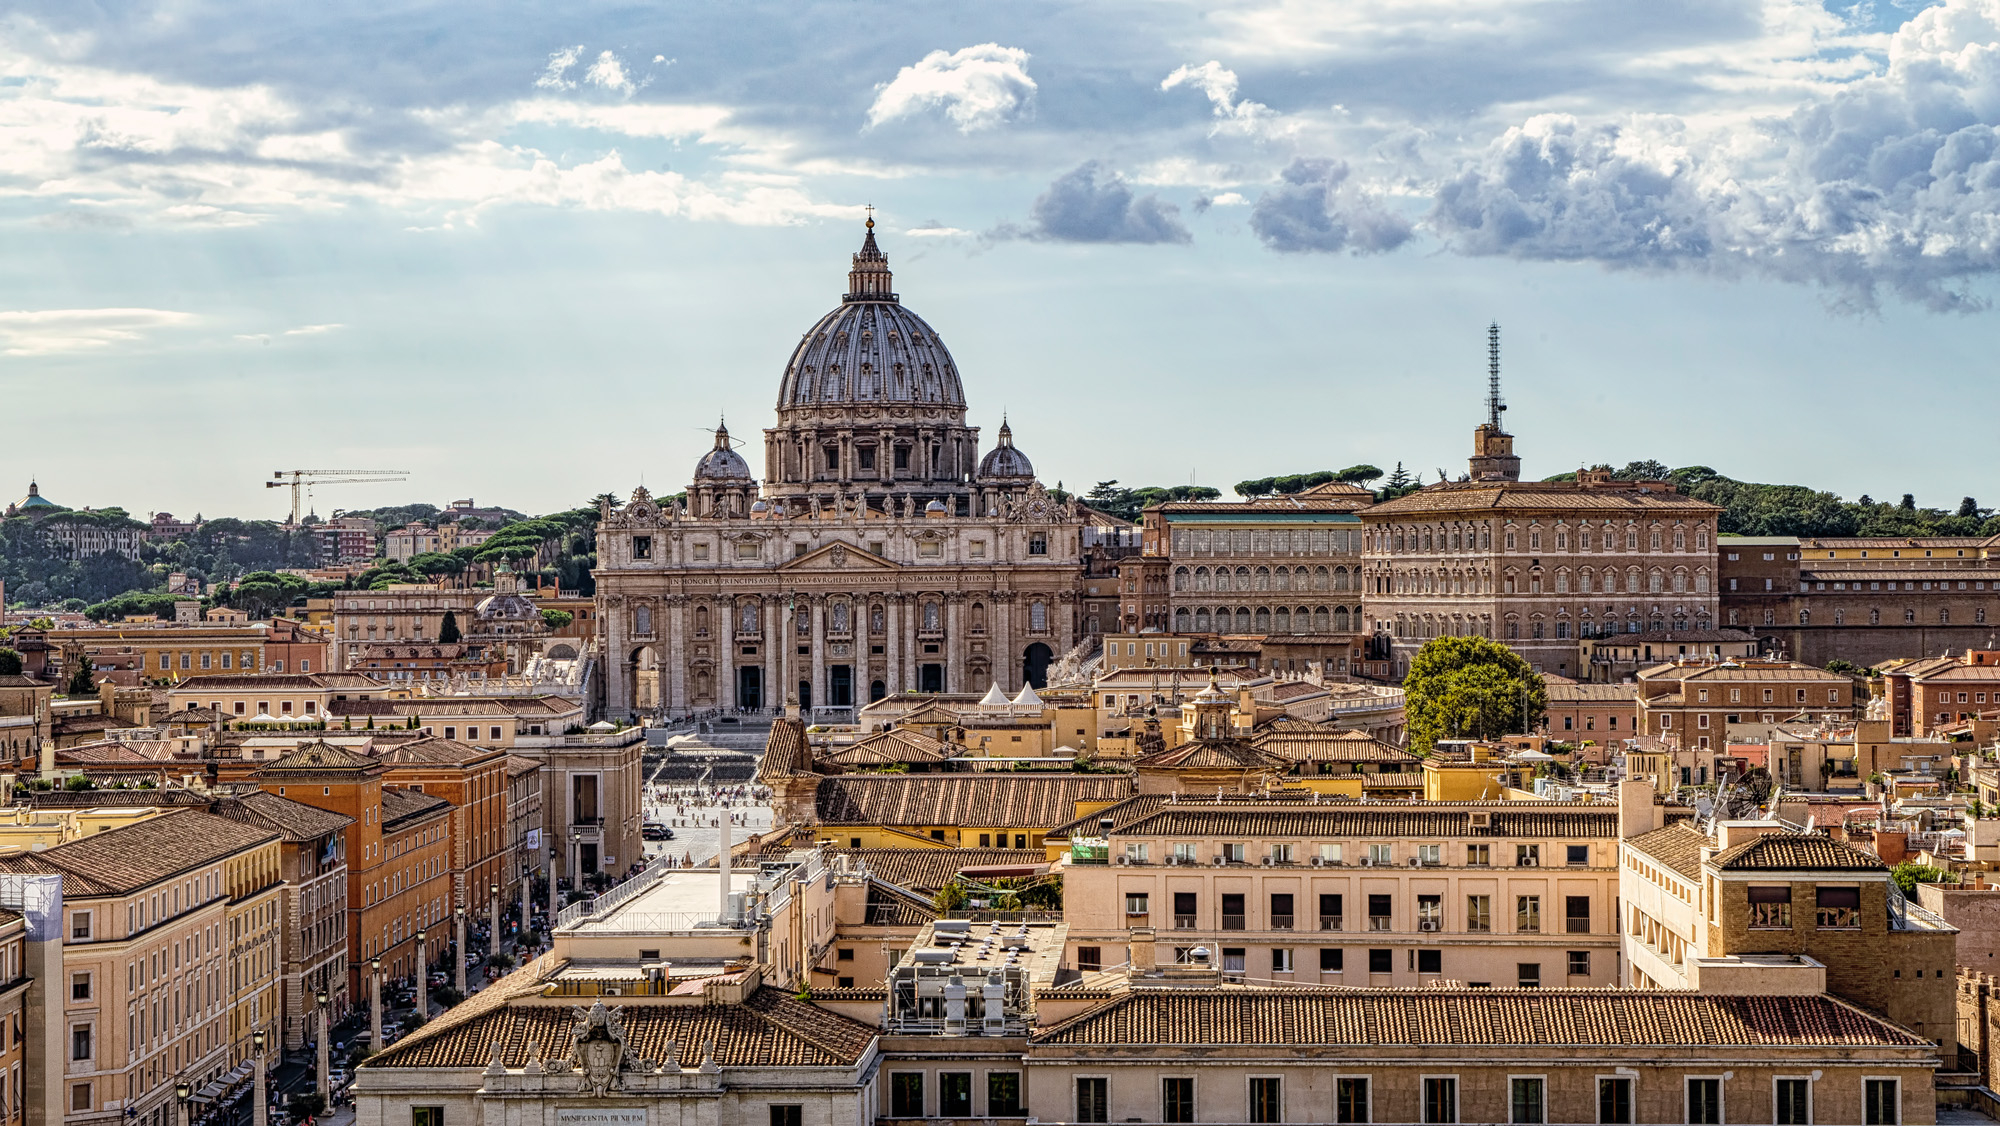 ROOF TOPS OF ROME.